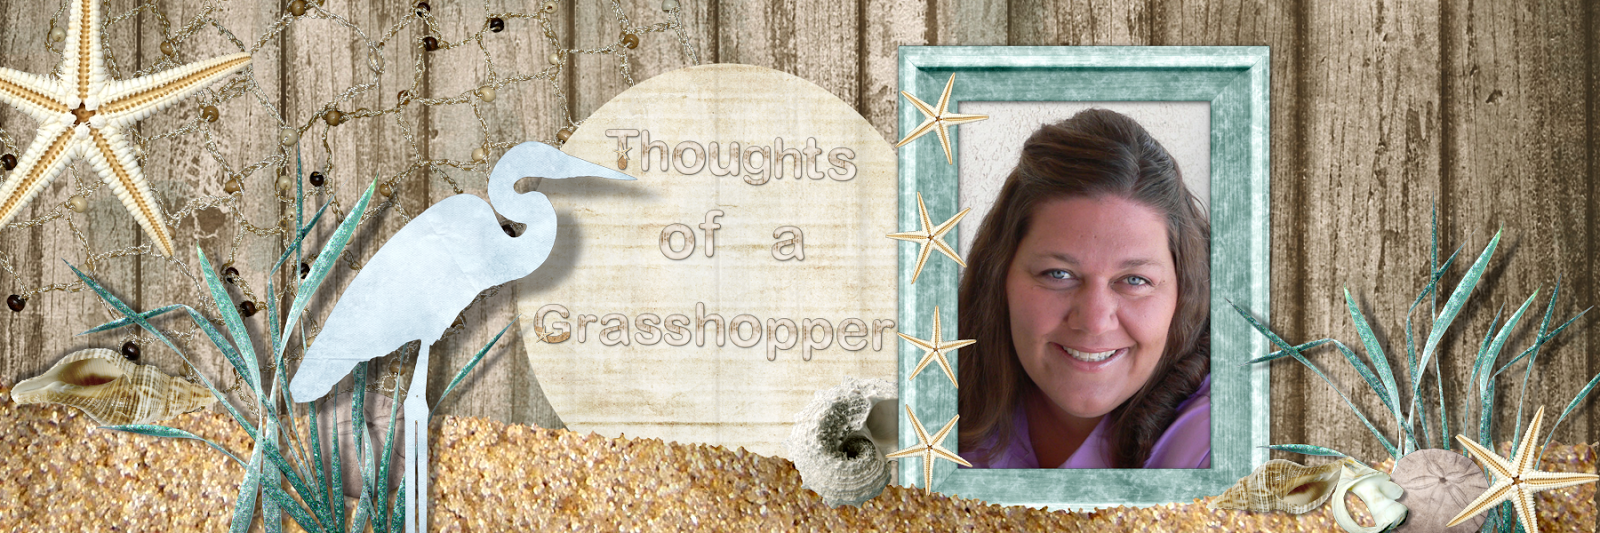 Thoughts of a Grasshopper